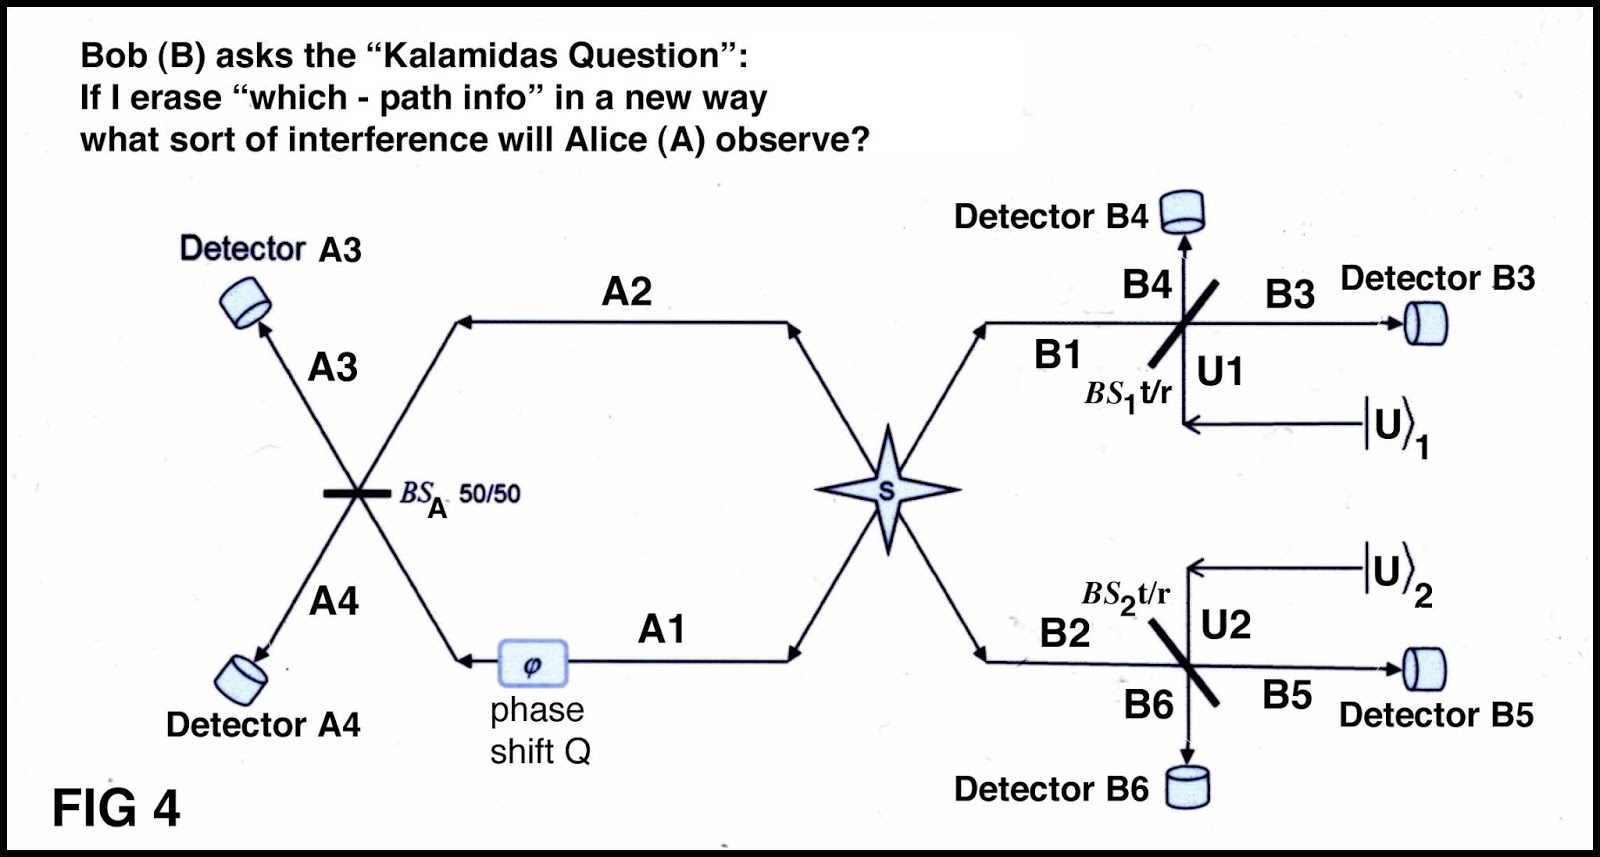 Quantum Tantra Understanding Wiring Diagrams J Bratton Page Furthermore This Process Is Asymmetric There No Partner Anti That Might Produce At Alices Site A Self Canceling Interference Pattern